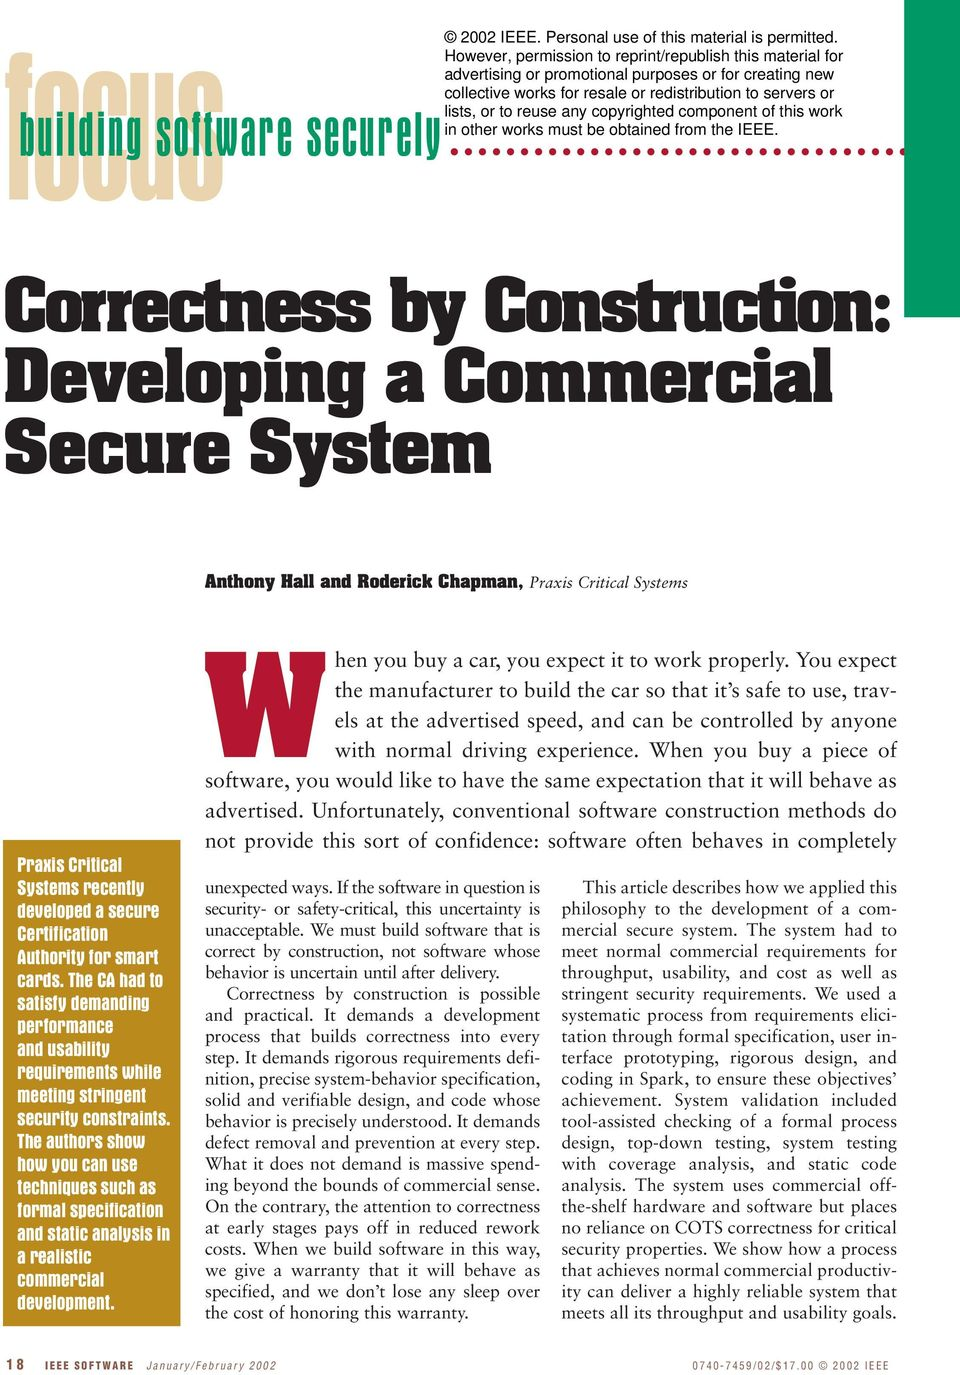 The authors show how you can use techniques such as formal specification and static analysis in a realistic commercial development. When you buy a car, you expect it to work properly.